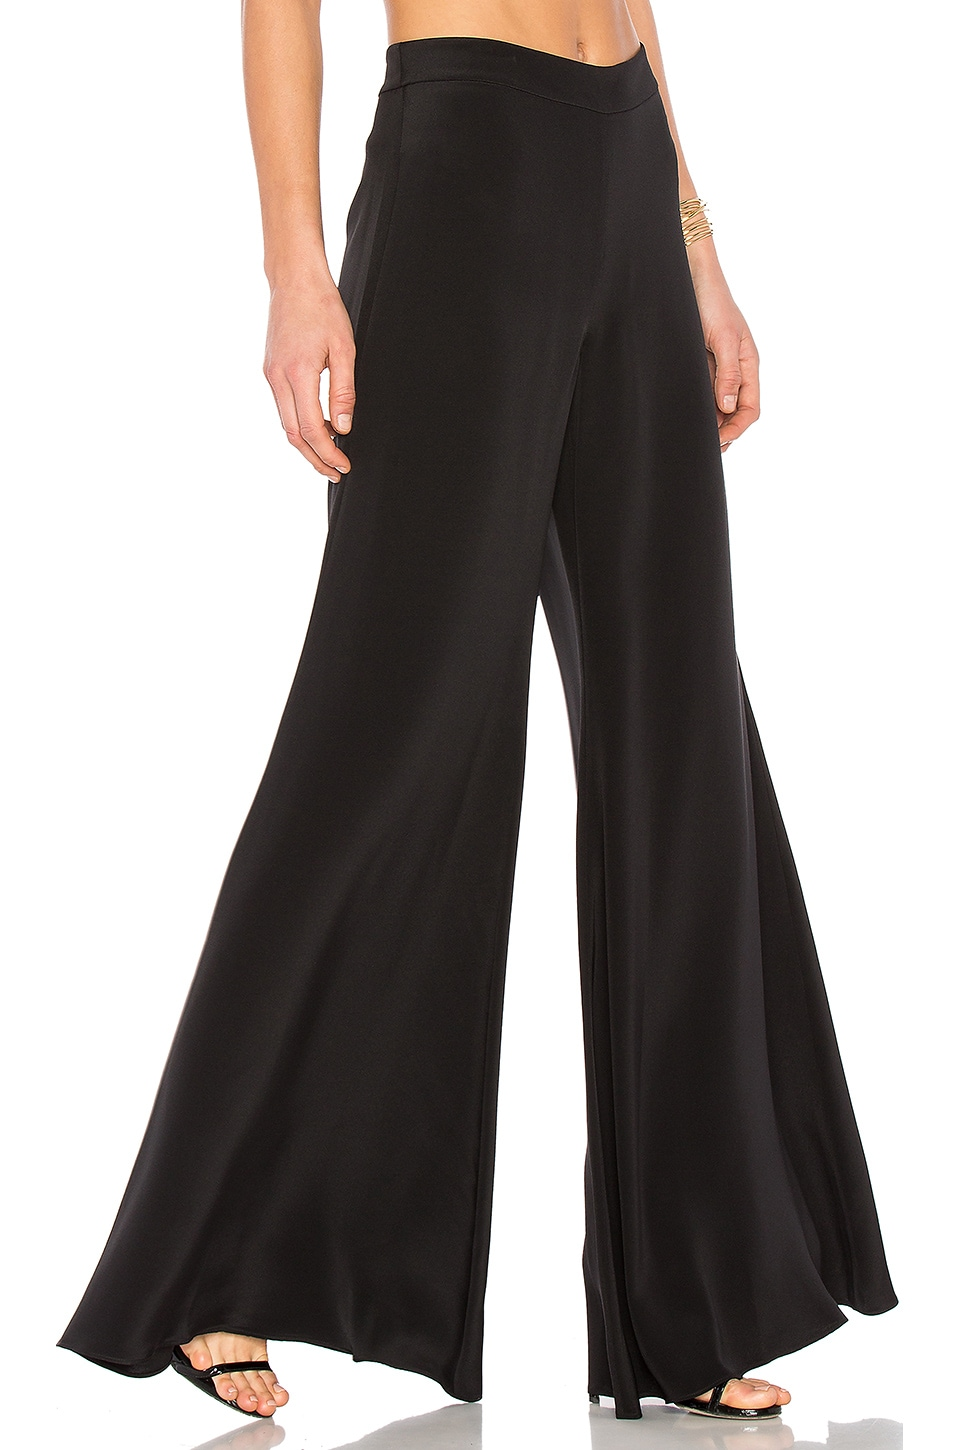 Alexis Mason Pants in Black